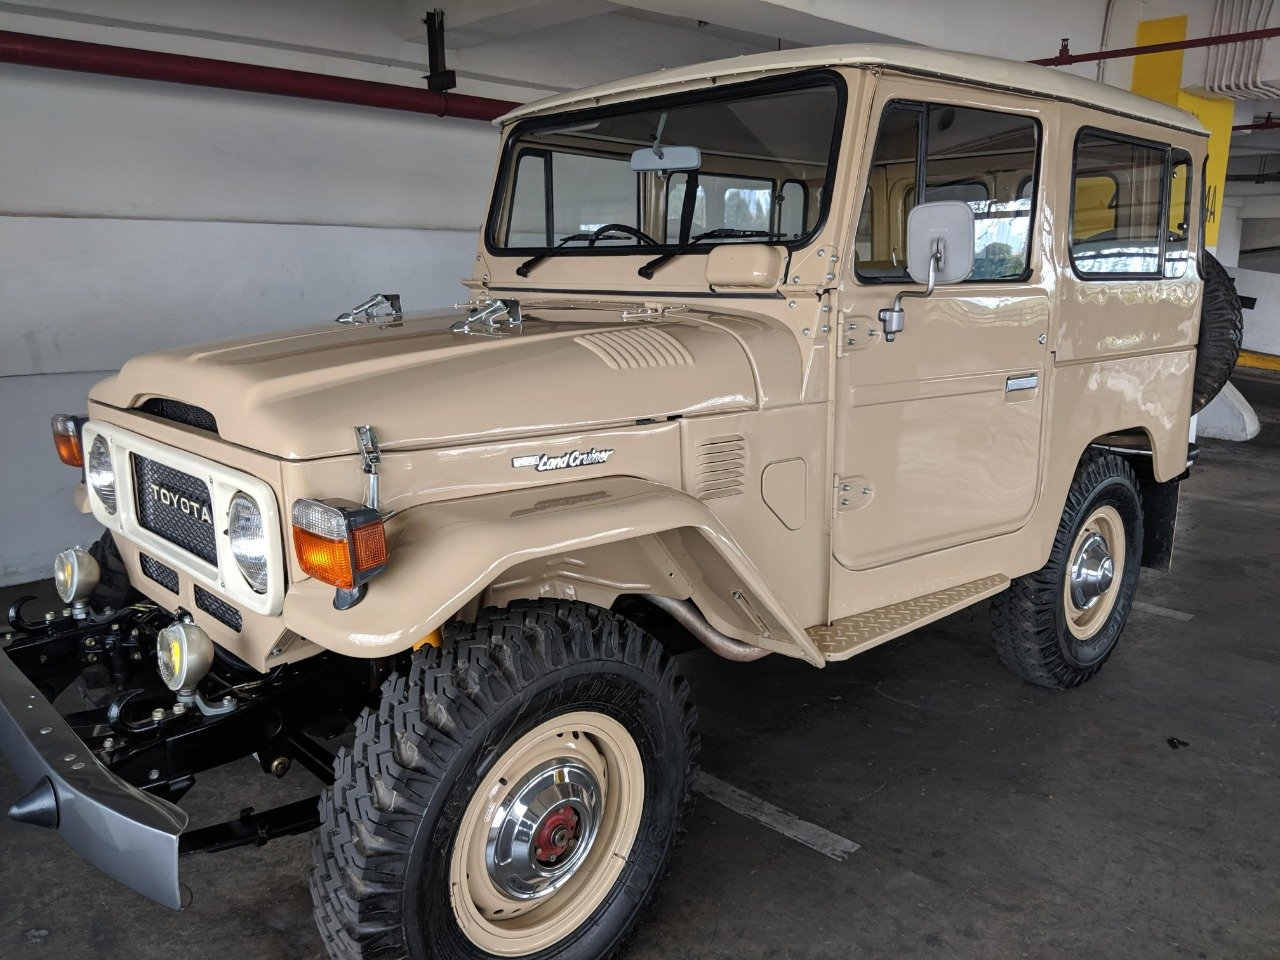 RHD 1980 Japanese factory Toyota FJ40 Land cruiser For Sale (picture 1 of 6)